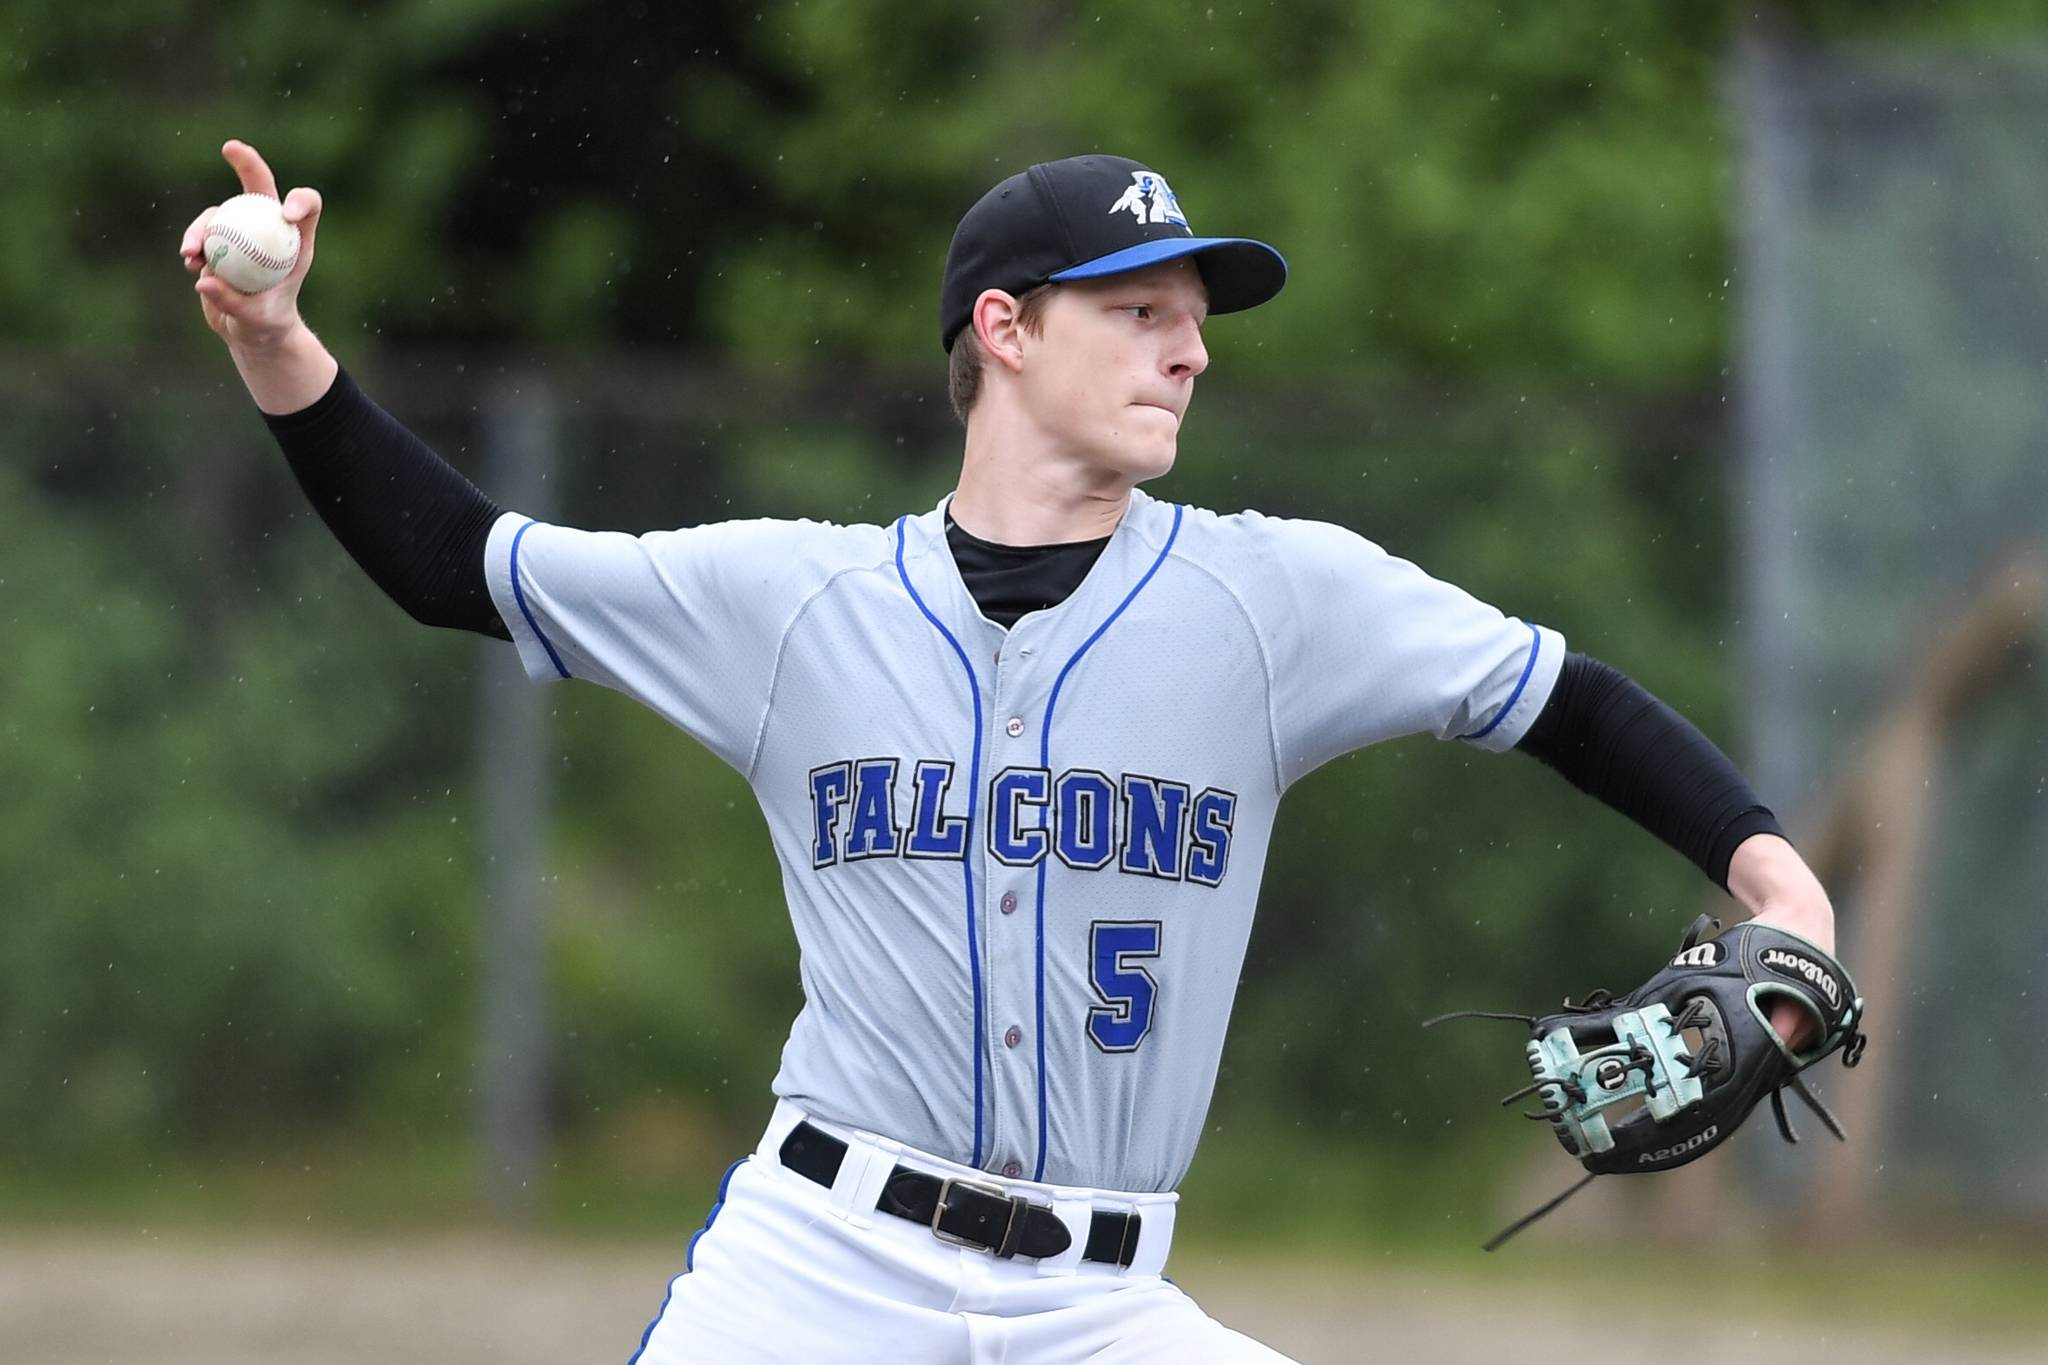 Thunder Mountain's Logan Lesmann pitches against Petersburg during the Region V Baseball Championship at Adair-Kennedy Memorial Park on Thursday, May 23, 2019. (Michael Penn | Juneau Empire)